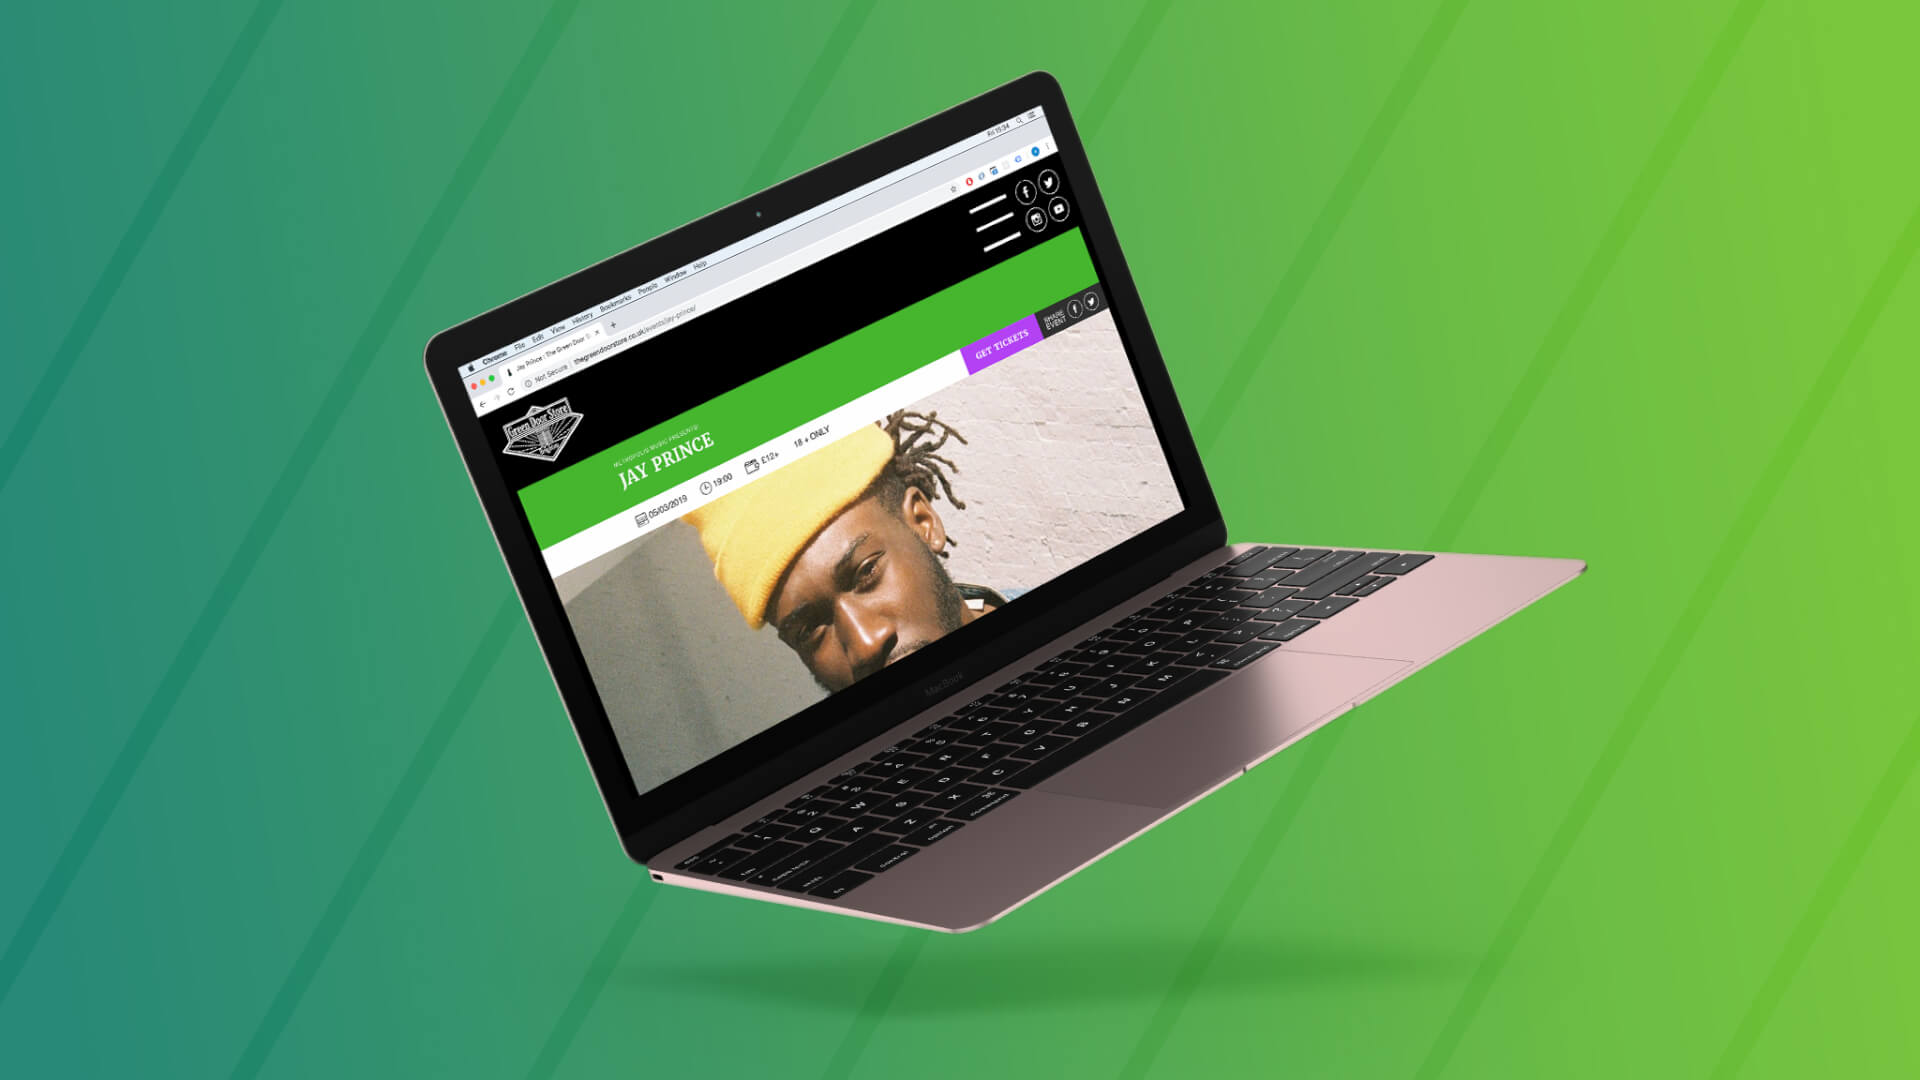 An image showing how the single events look on the new Green Door Store website, on a Macbook Pro. This event is for the artist Jay Prince.